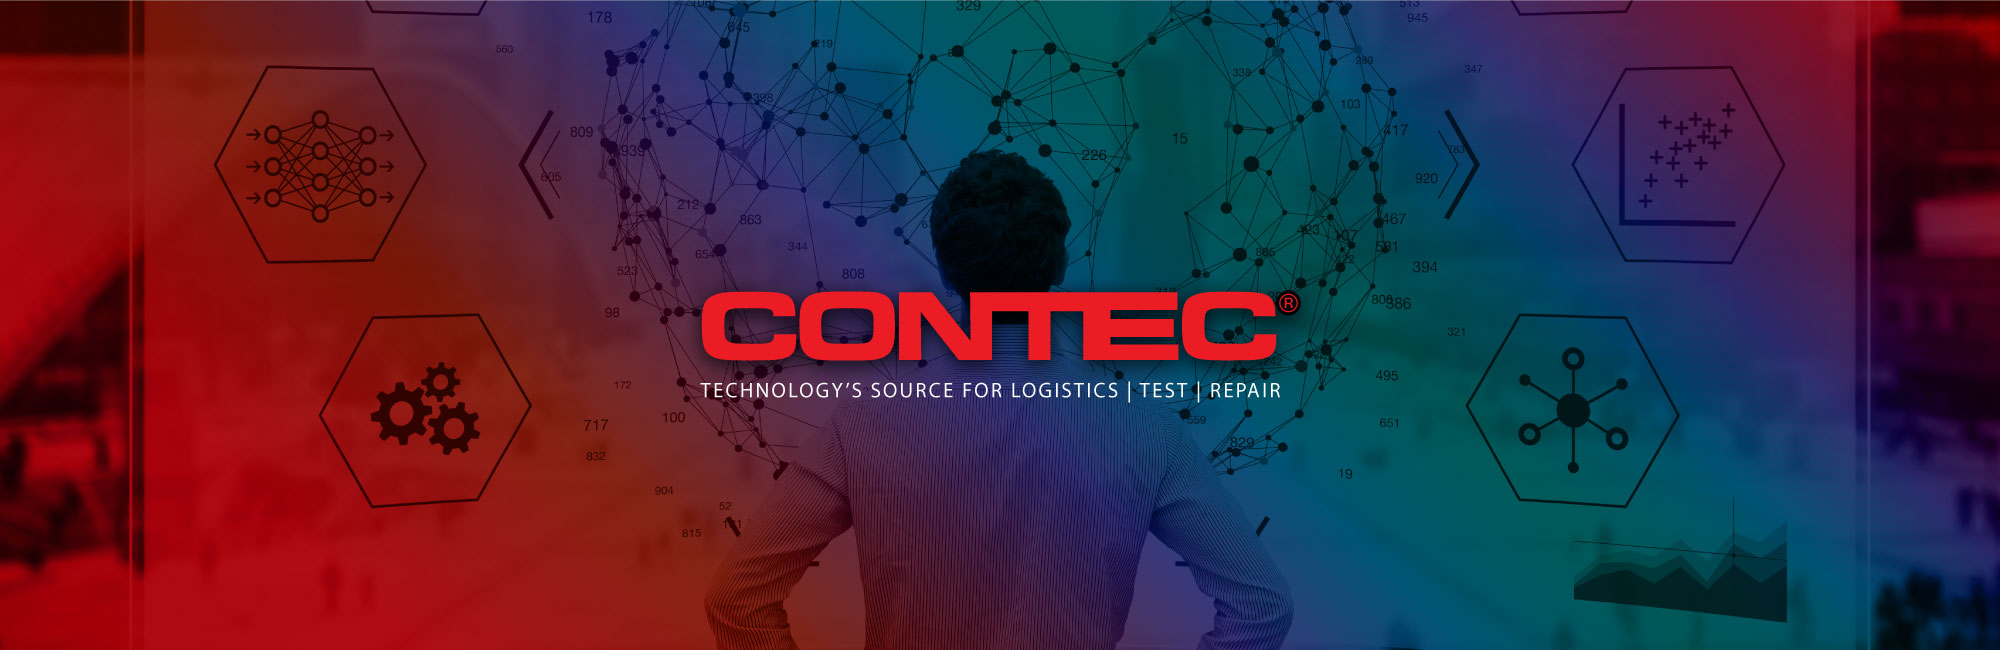 iAero Thrust selects Contec as its Warehouse and Materials Managed Service Provider